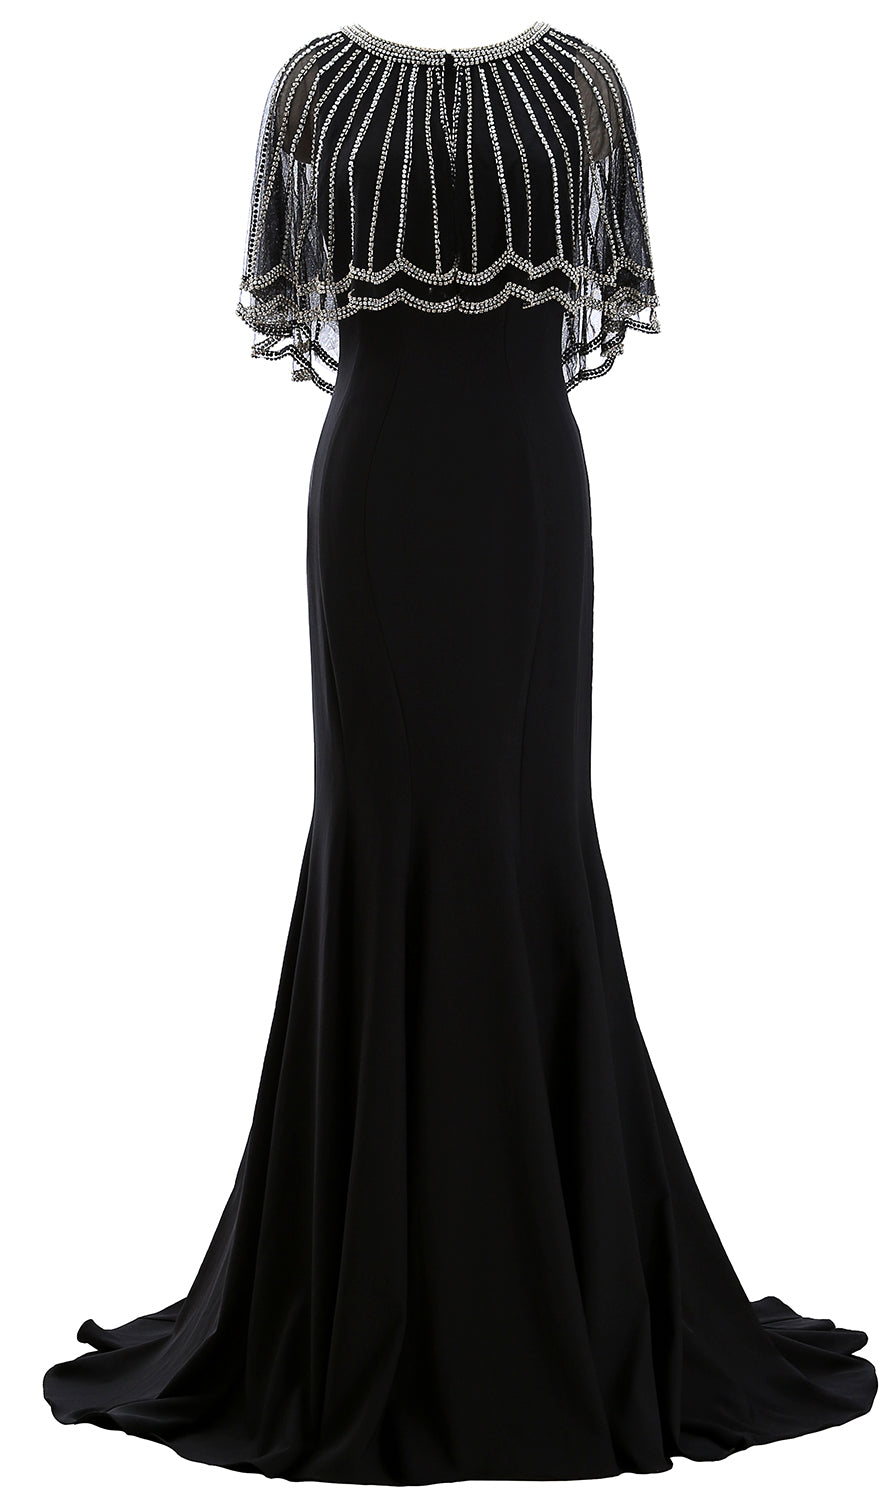 MACloth Women Beaded Mother of the Bride Dress with Sheer Cape Evening Gown